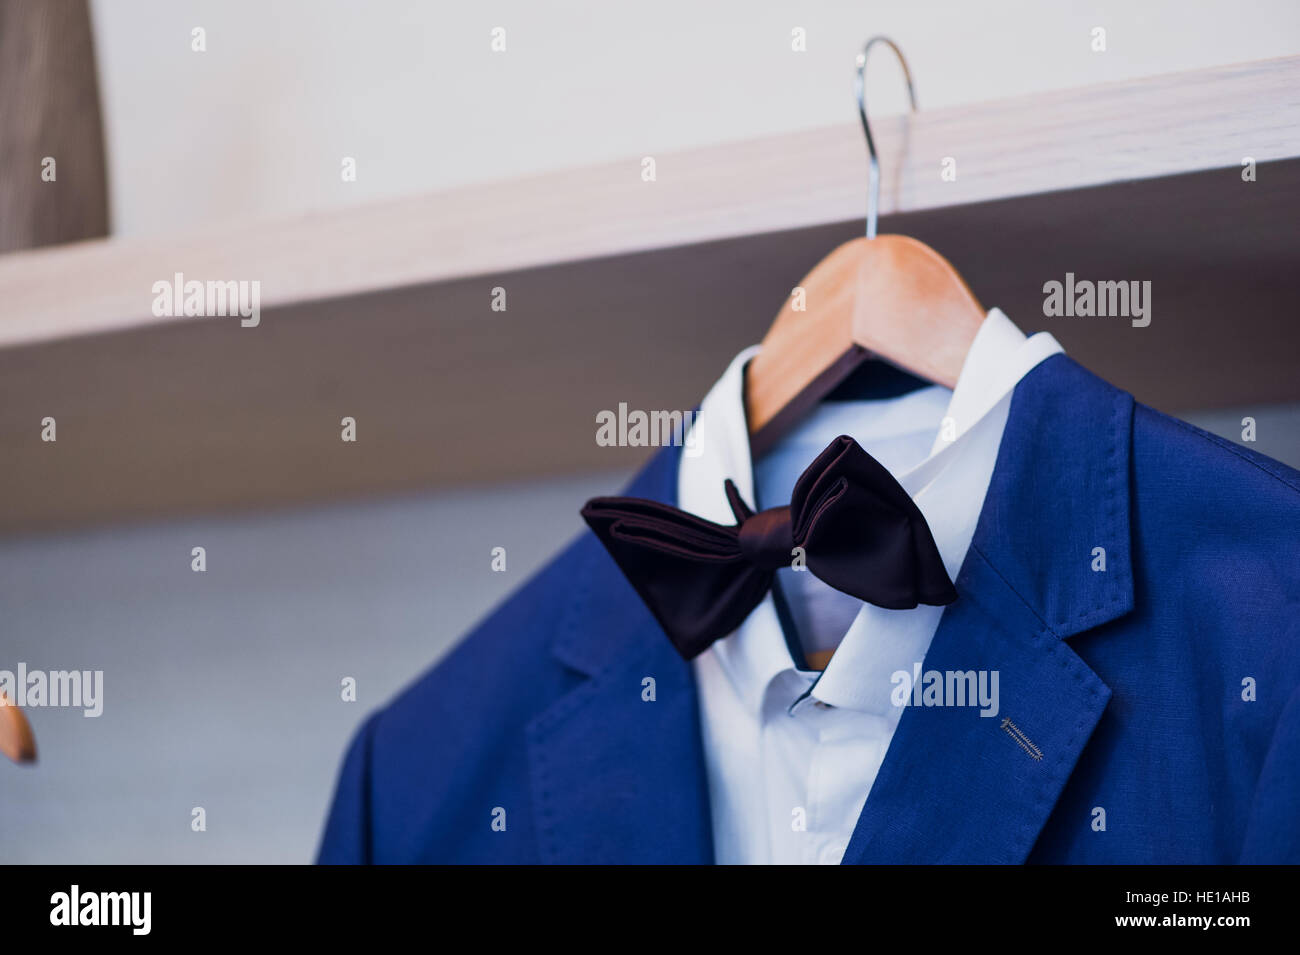 Close-up of blue jacket with bow tie on a hanger. Stock Photo